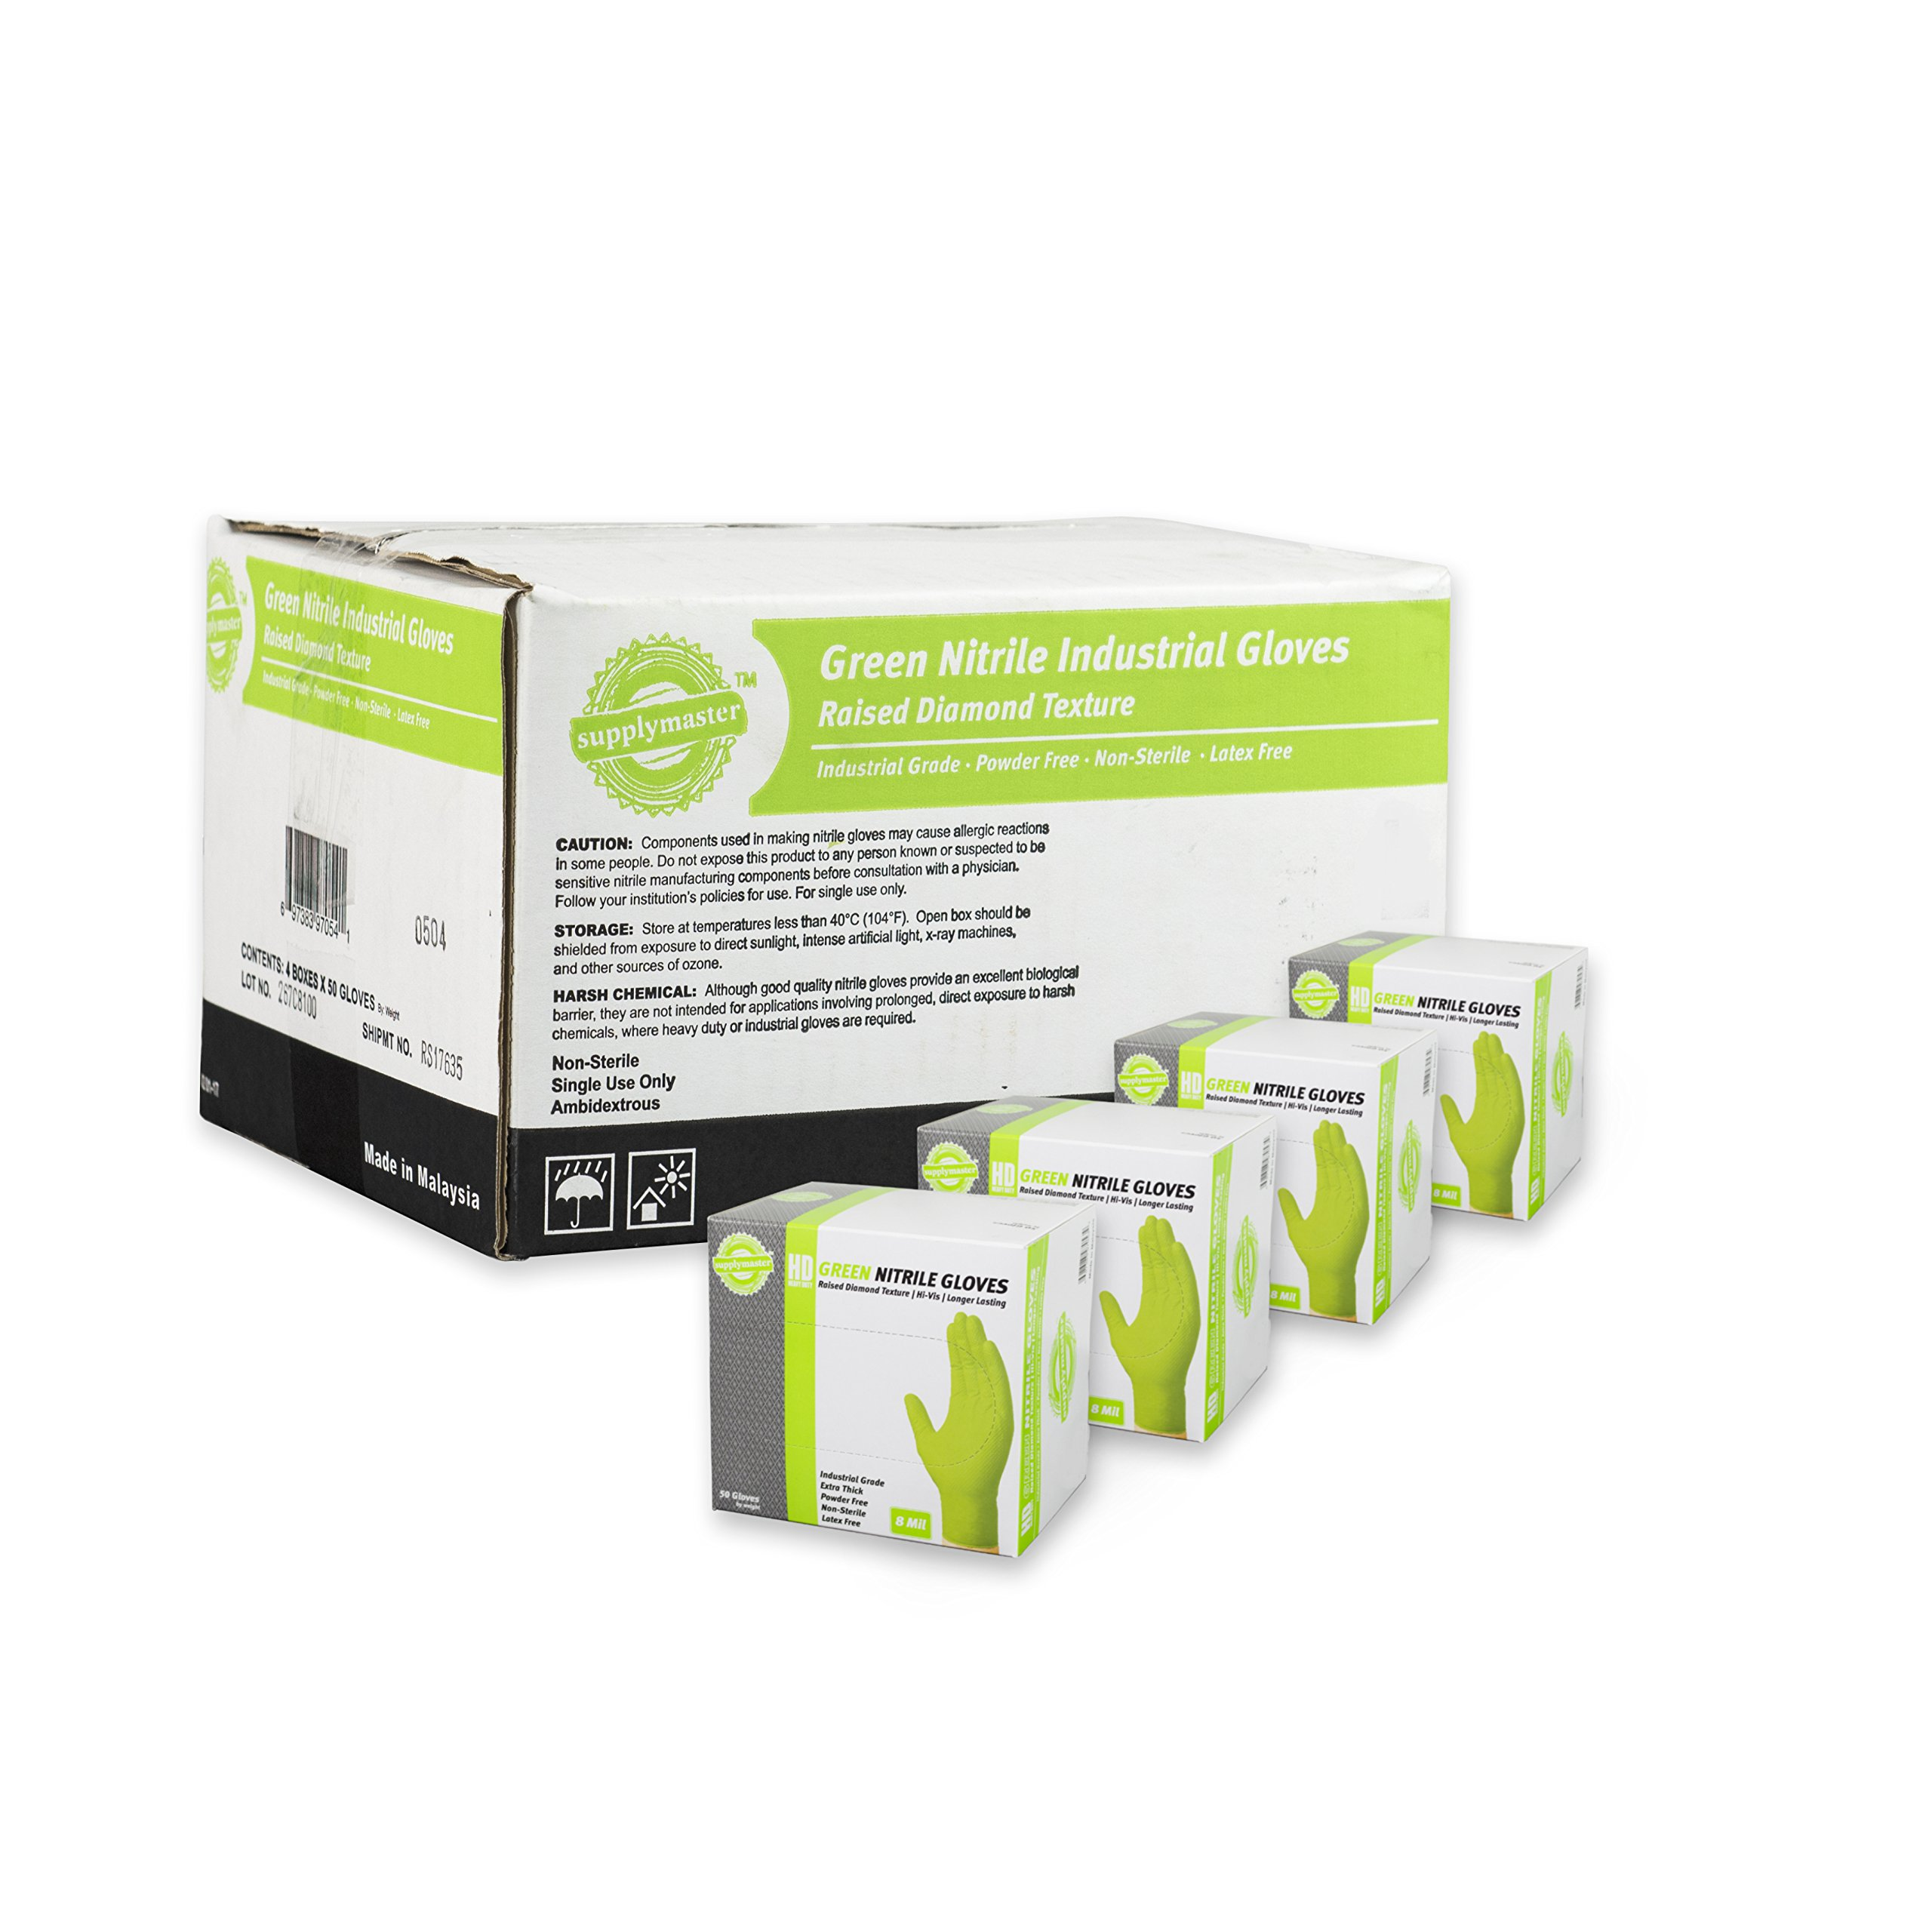 SupplyMaster - SMDTGN8XL-BX - Diamond Texture Nitrile Gloves - Disposable, Powder Free, Industrial, 8 mil, XLarge, Green (Box of 50)